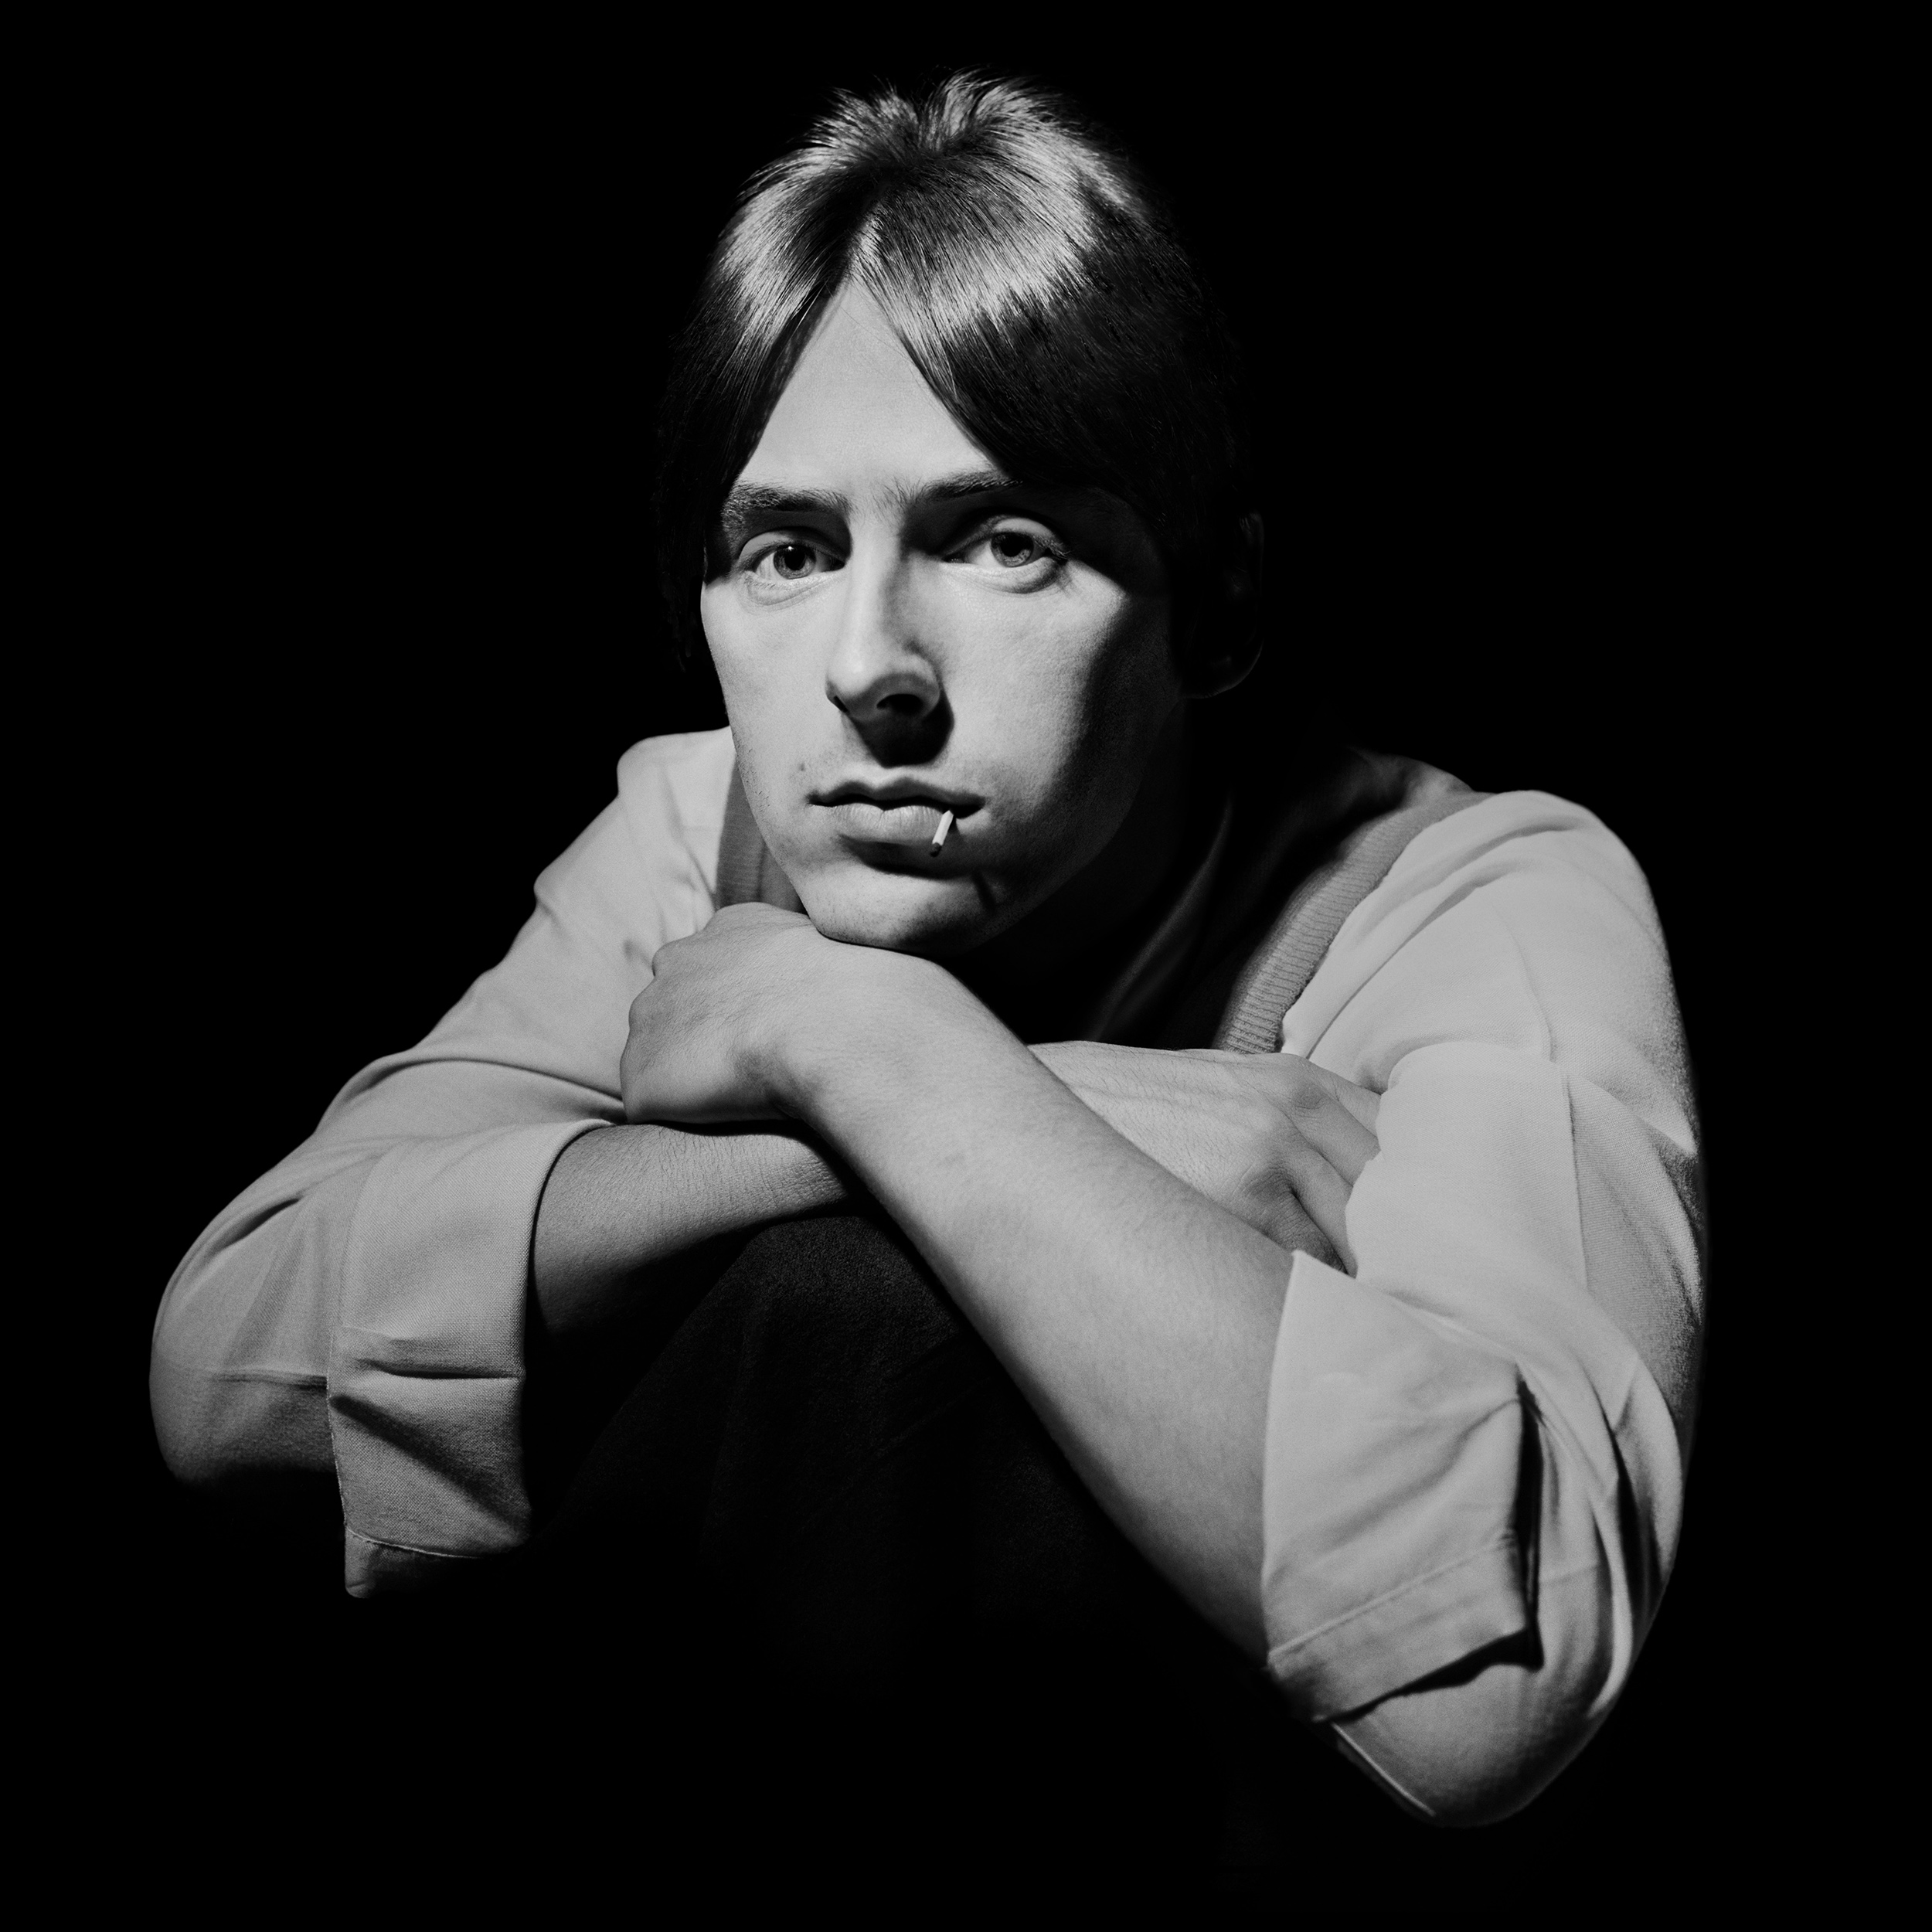 Paul Weller - The Face 1981  Whilst Terry Hall never appeared to smile, he was certainly not miserable, he just saw no need to smile, if you asked him to he did, albeit in a very minimalist fashion. The same was not true of Paul Weller.  I remember this shoot well, it was a cover story for the Face, he was wearing a bright red vest, a clean white shirt, and his hair was a perfect copy of Stevie Marriott. You could certainly direct Paul, it did not do you much good however. All you got was the look, a stare that questioned his reason for being there, that this was part of the job, that you would never see below the surface.  Being for the cover it needed to be good, I tried everything to get some kind of look on his face, every angle failed, nothing brought a smile to his face, nothing I said caused any change in him, the photo needed something and I told him so.  Out of his pocket he produced a box of matches, he put one in his mouth and the picture somehow now had a life, he moved it around slightly between frames, as if it were an important prop. His face is exactly the same in all the pictures, the position of the match governs the choice, yet somehow there is something here, a flicker of interest in his eyes, but you have to look really hard to see past the persona he has always projected, that of Paul Weller, leader of the Jam, leader of the Style Council, and now the Godfather of Pop, I'm amazed he has lasted this long.